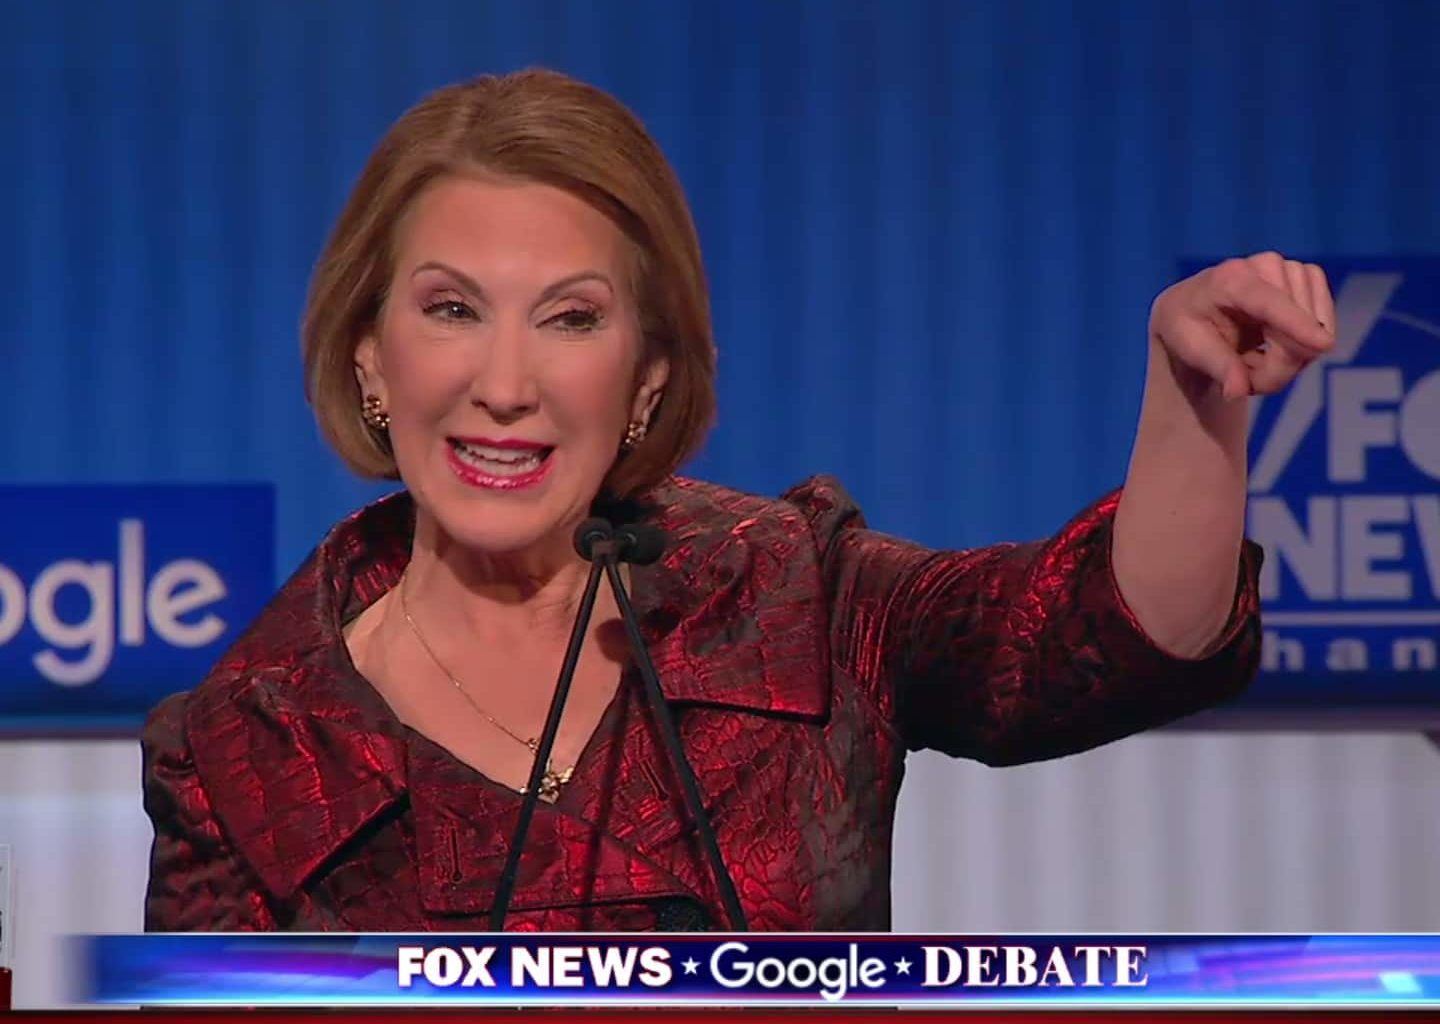 Carly Fiorina's Company Bribed Russian Officials, Made Millions During Iran Embargo